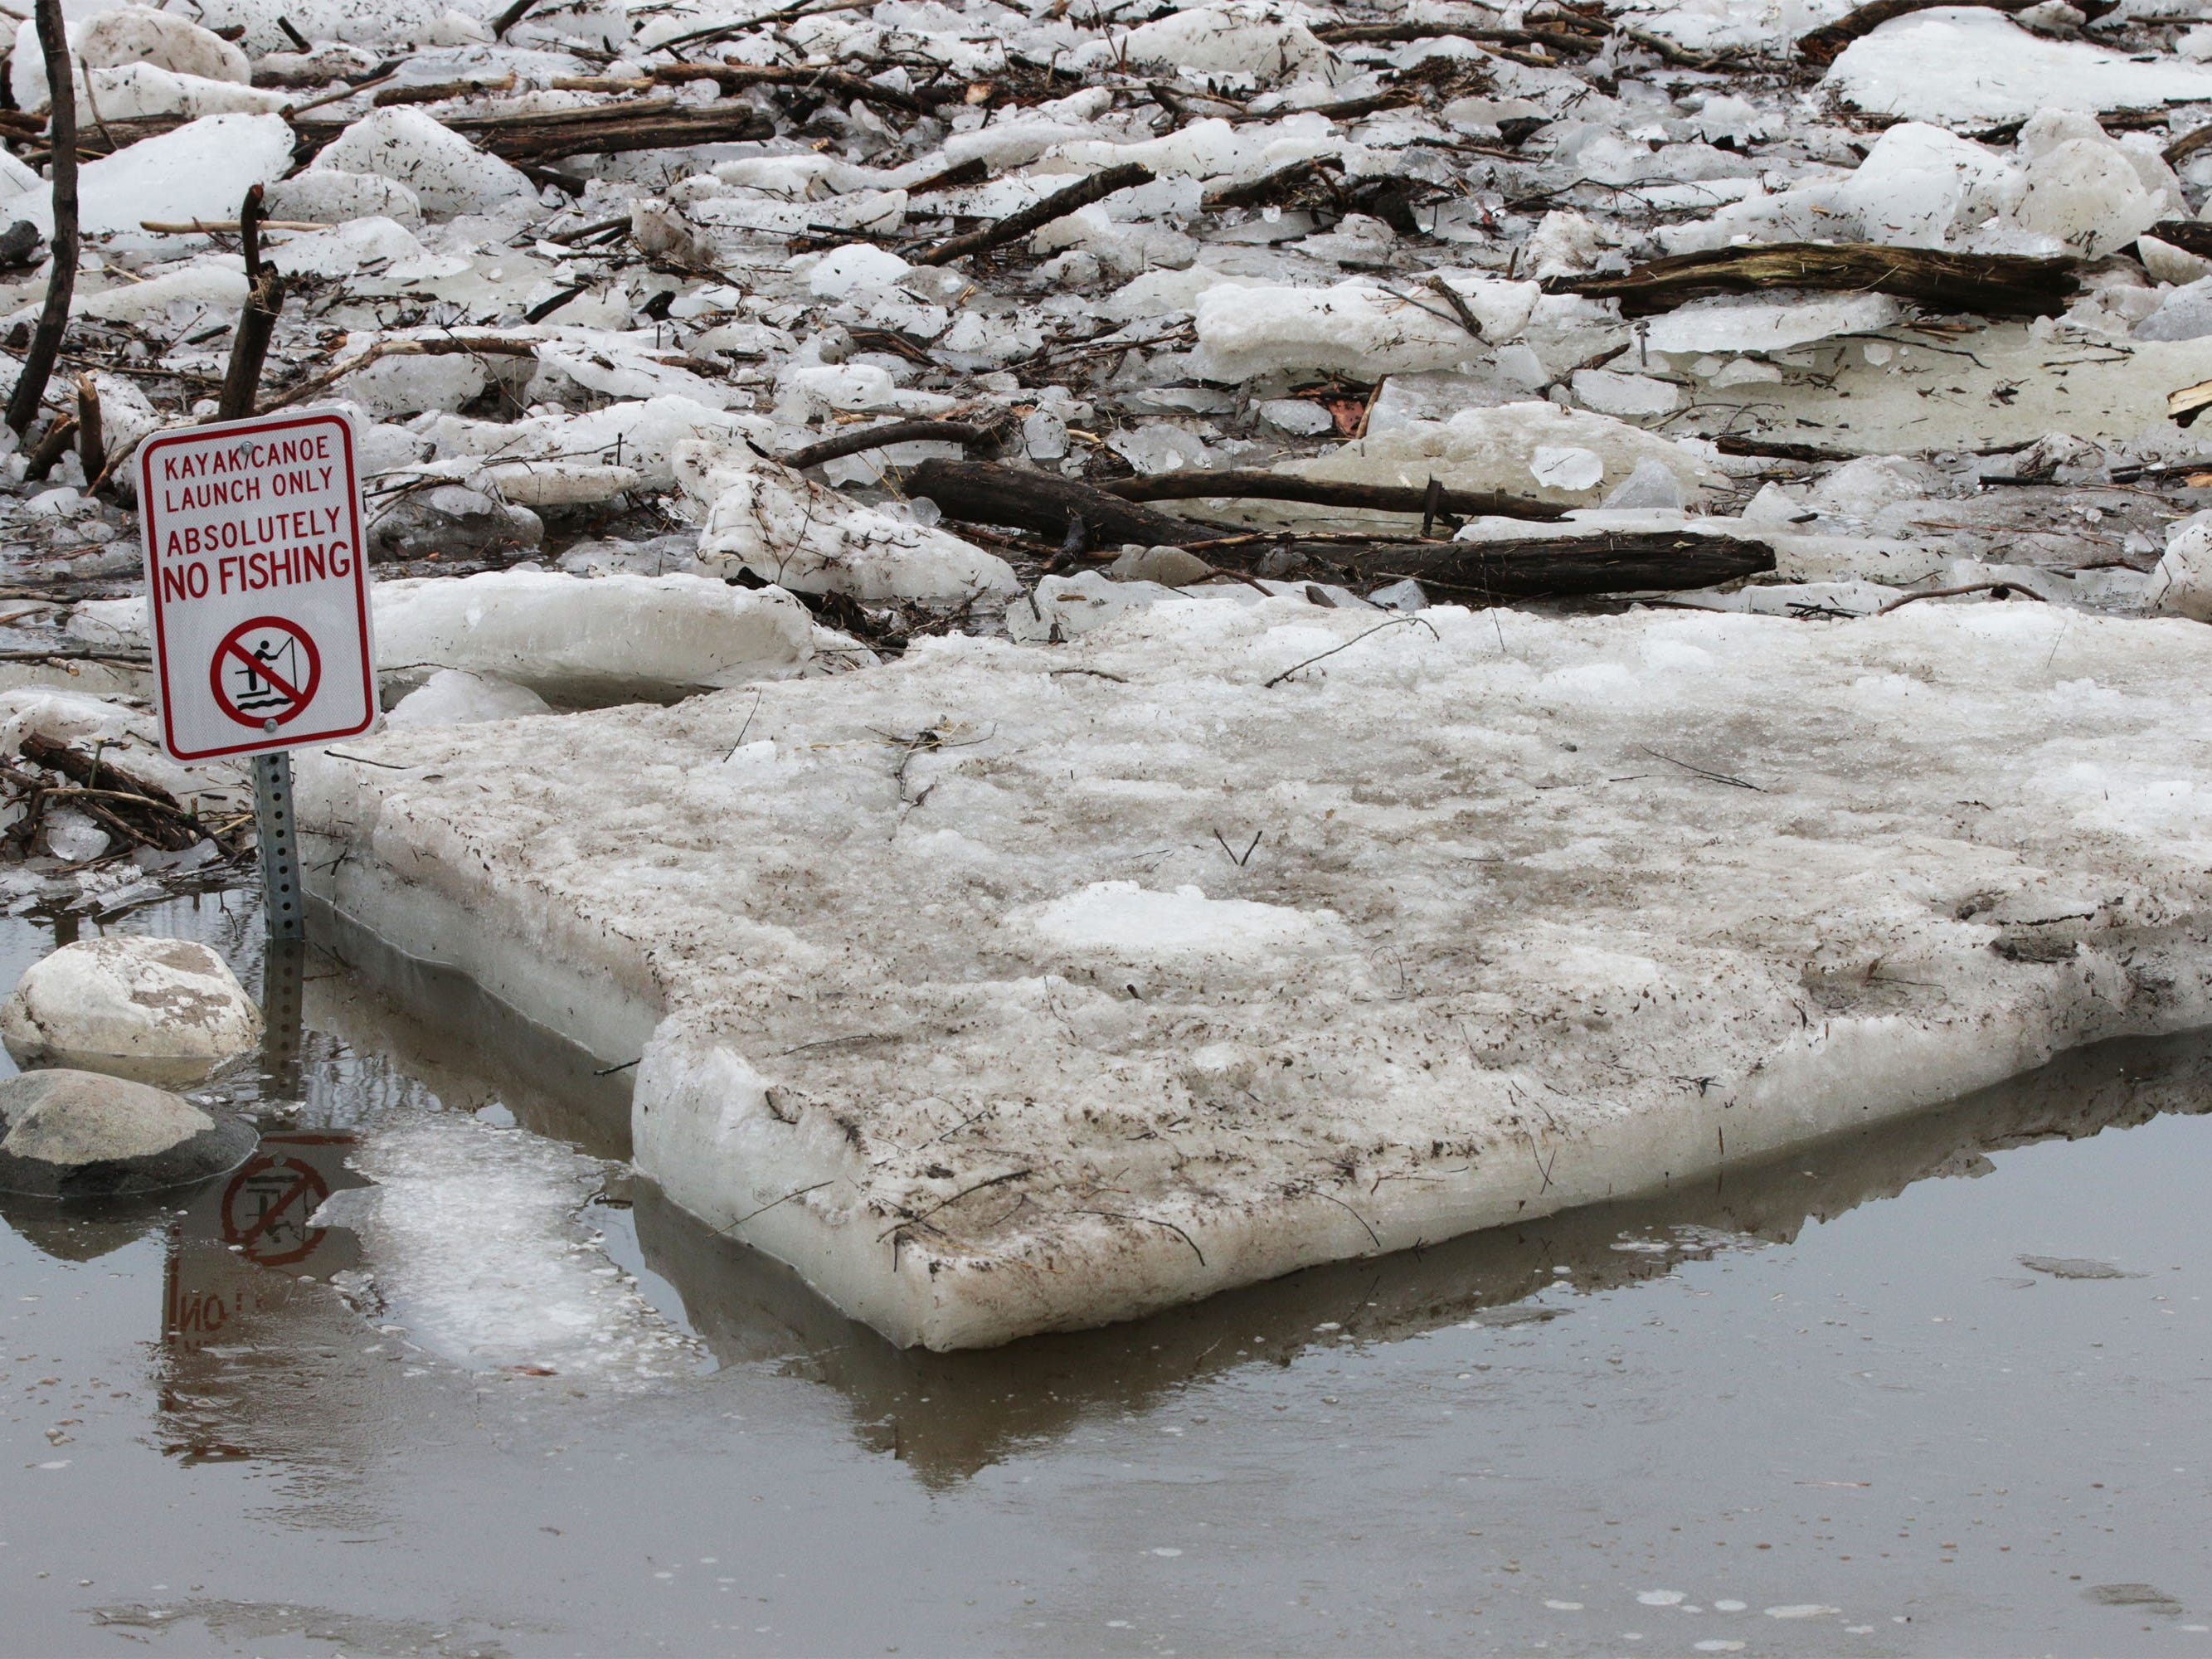 A big slab of ice parks next to a kayak/canoe launch spot at Kiwanis Park, Wednesday, March 20, 2019, in Sheboygan, Wis.